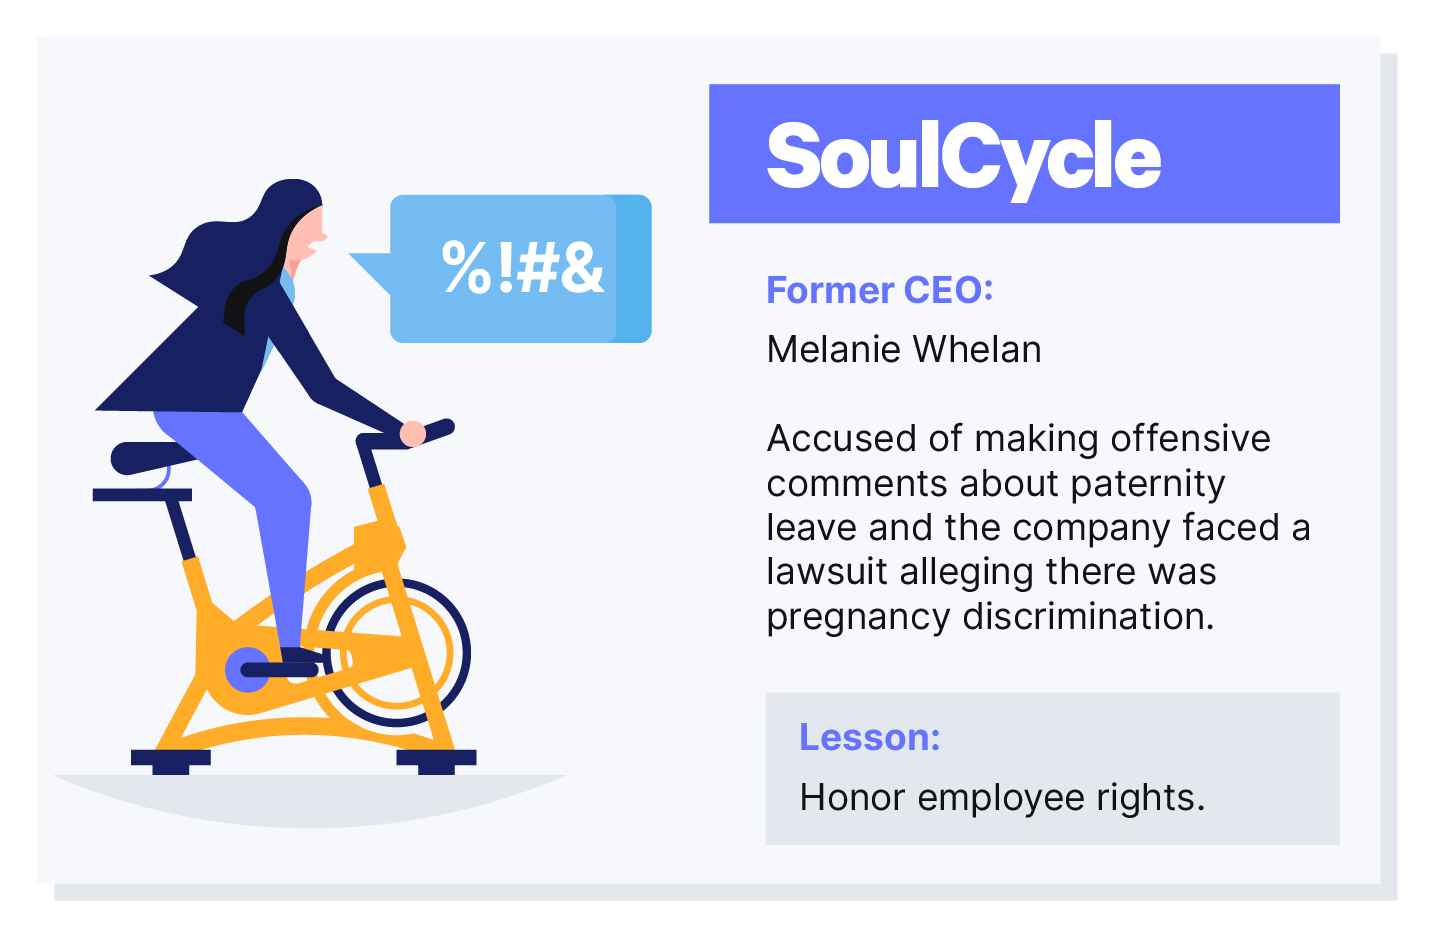 SoulCycle lawsuit post image